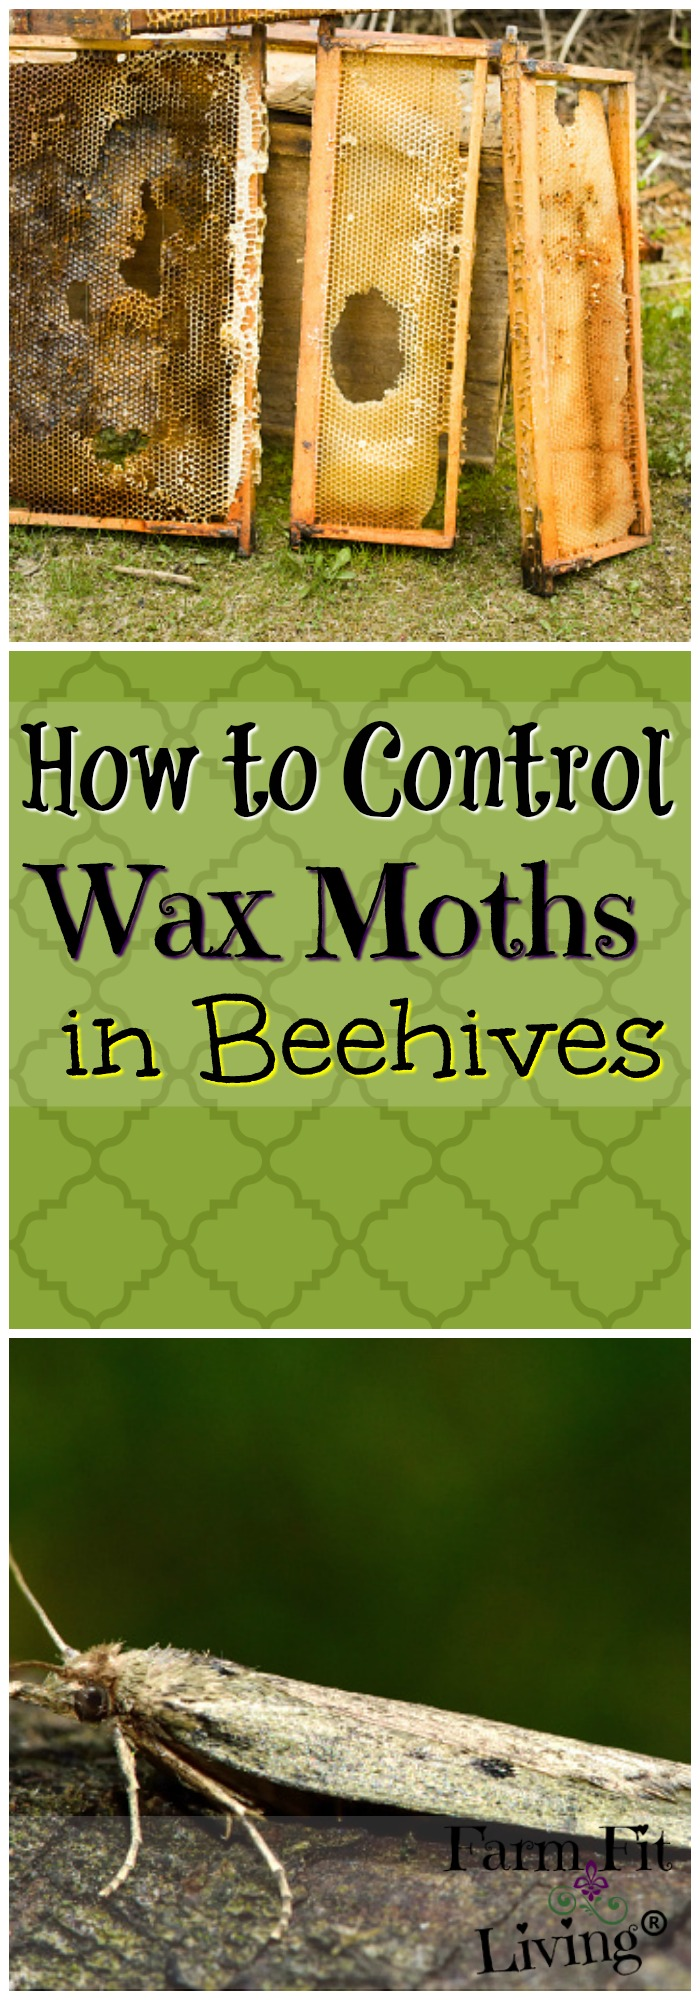 control wax moths in beehives